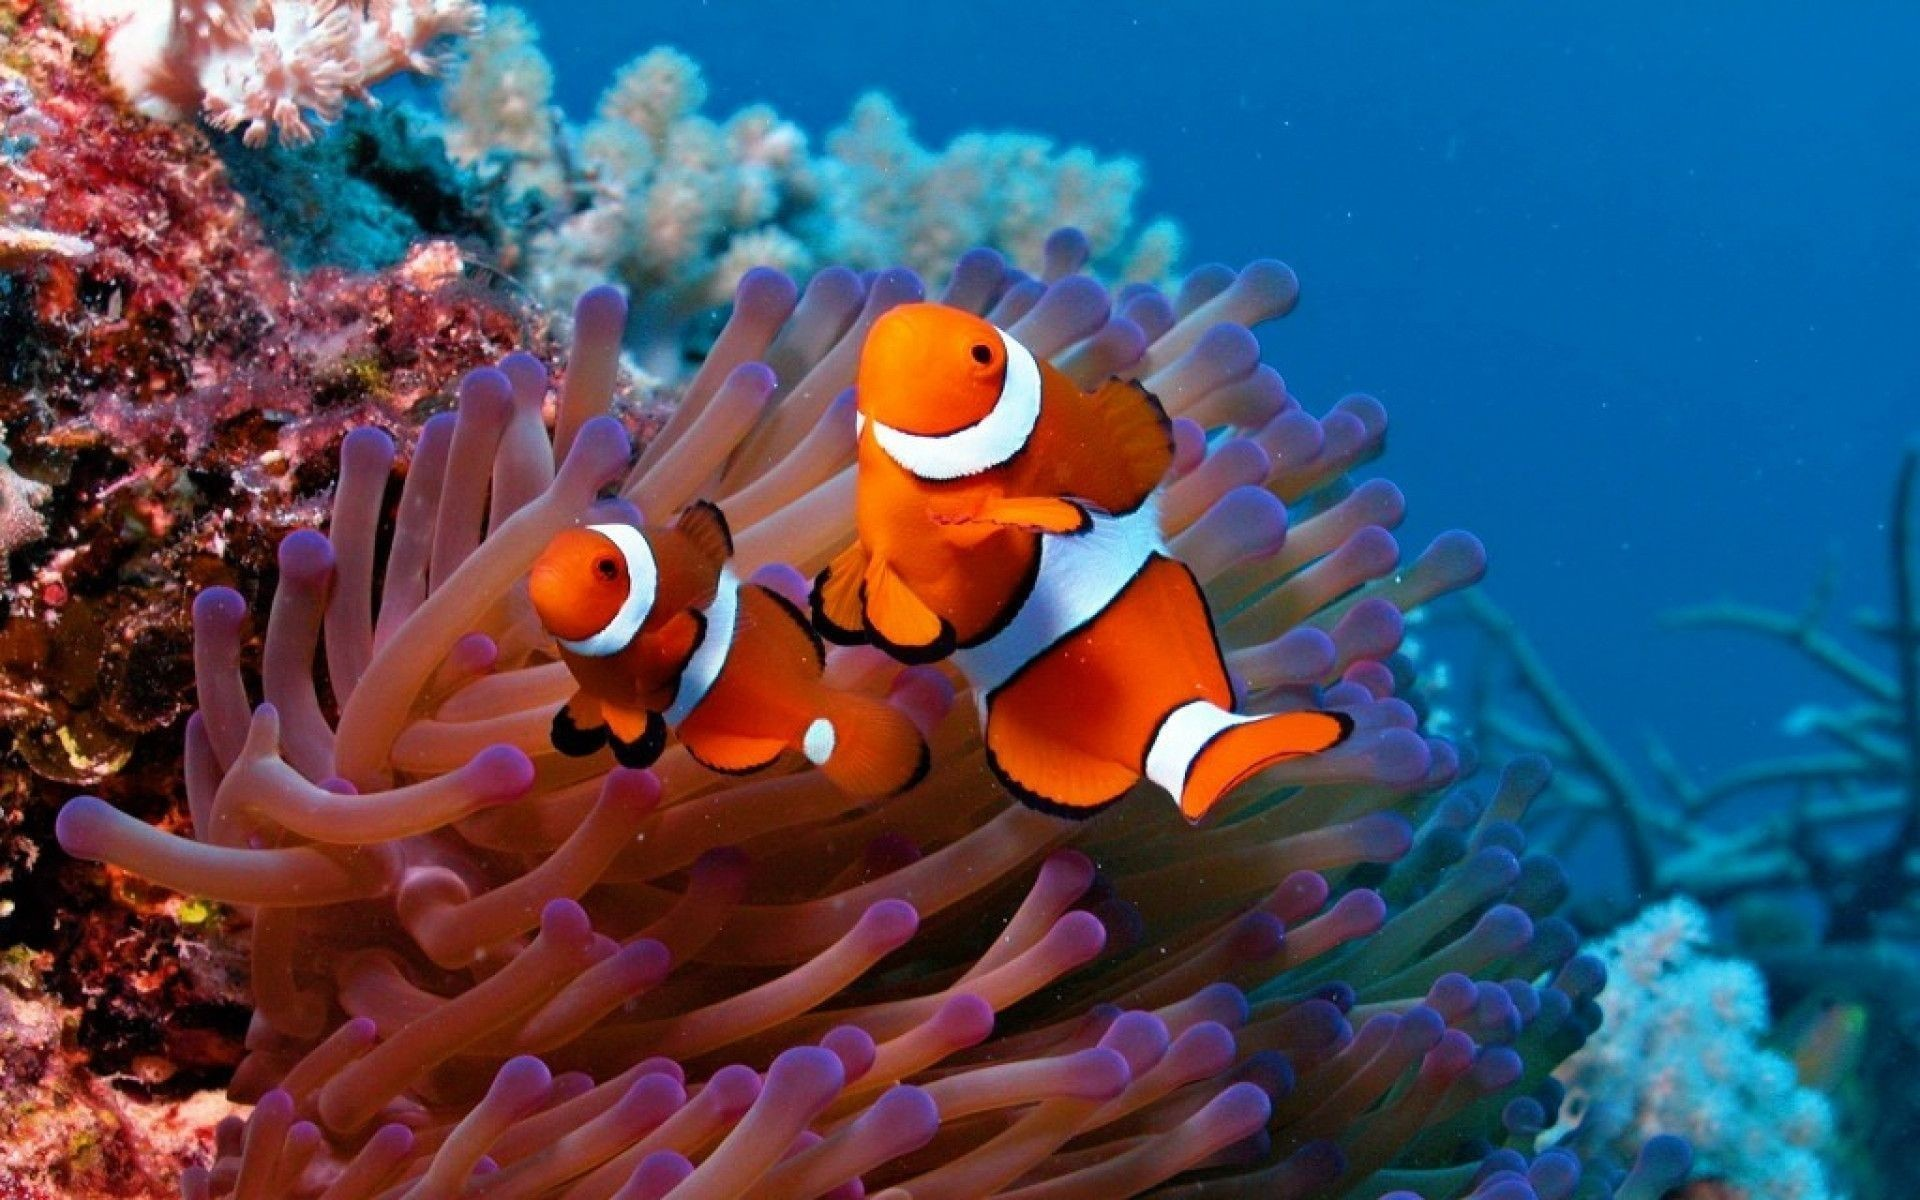 1920x1080 Red Fish 162635 High Quality And Resolution Wallpapers On